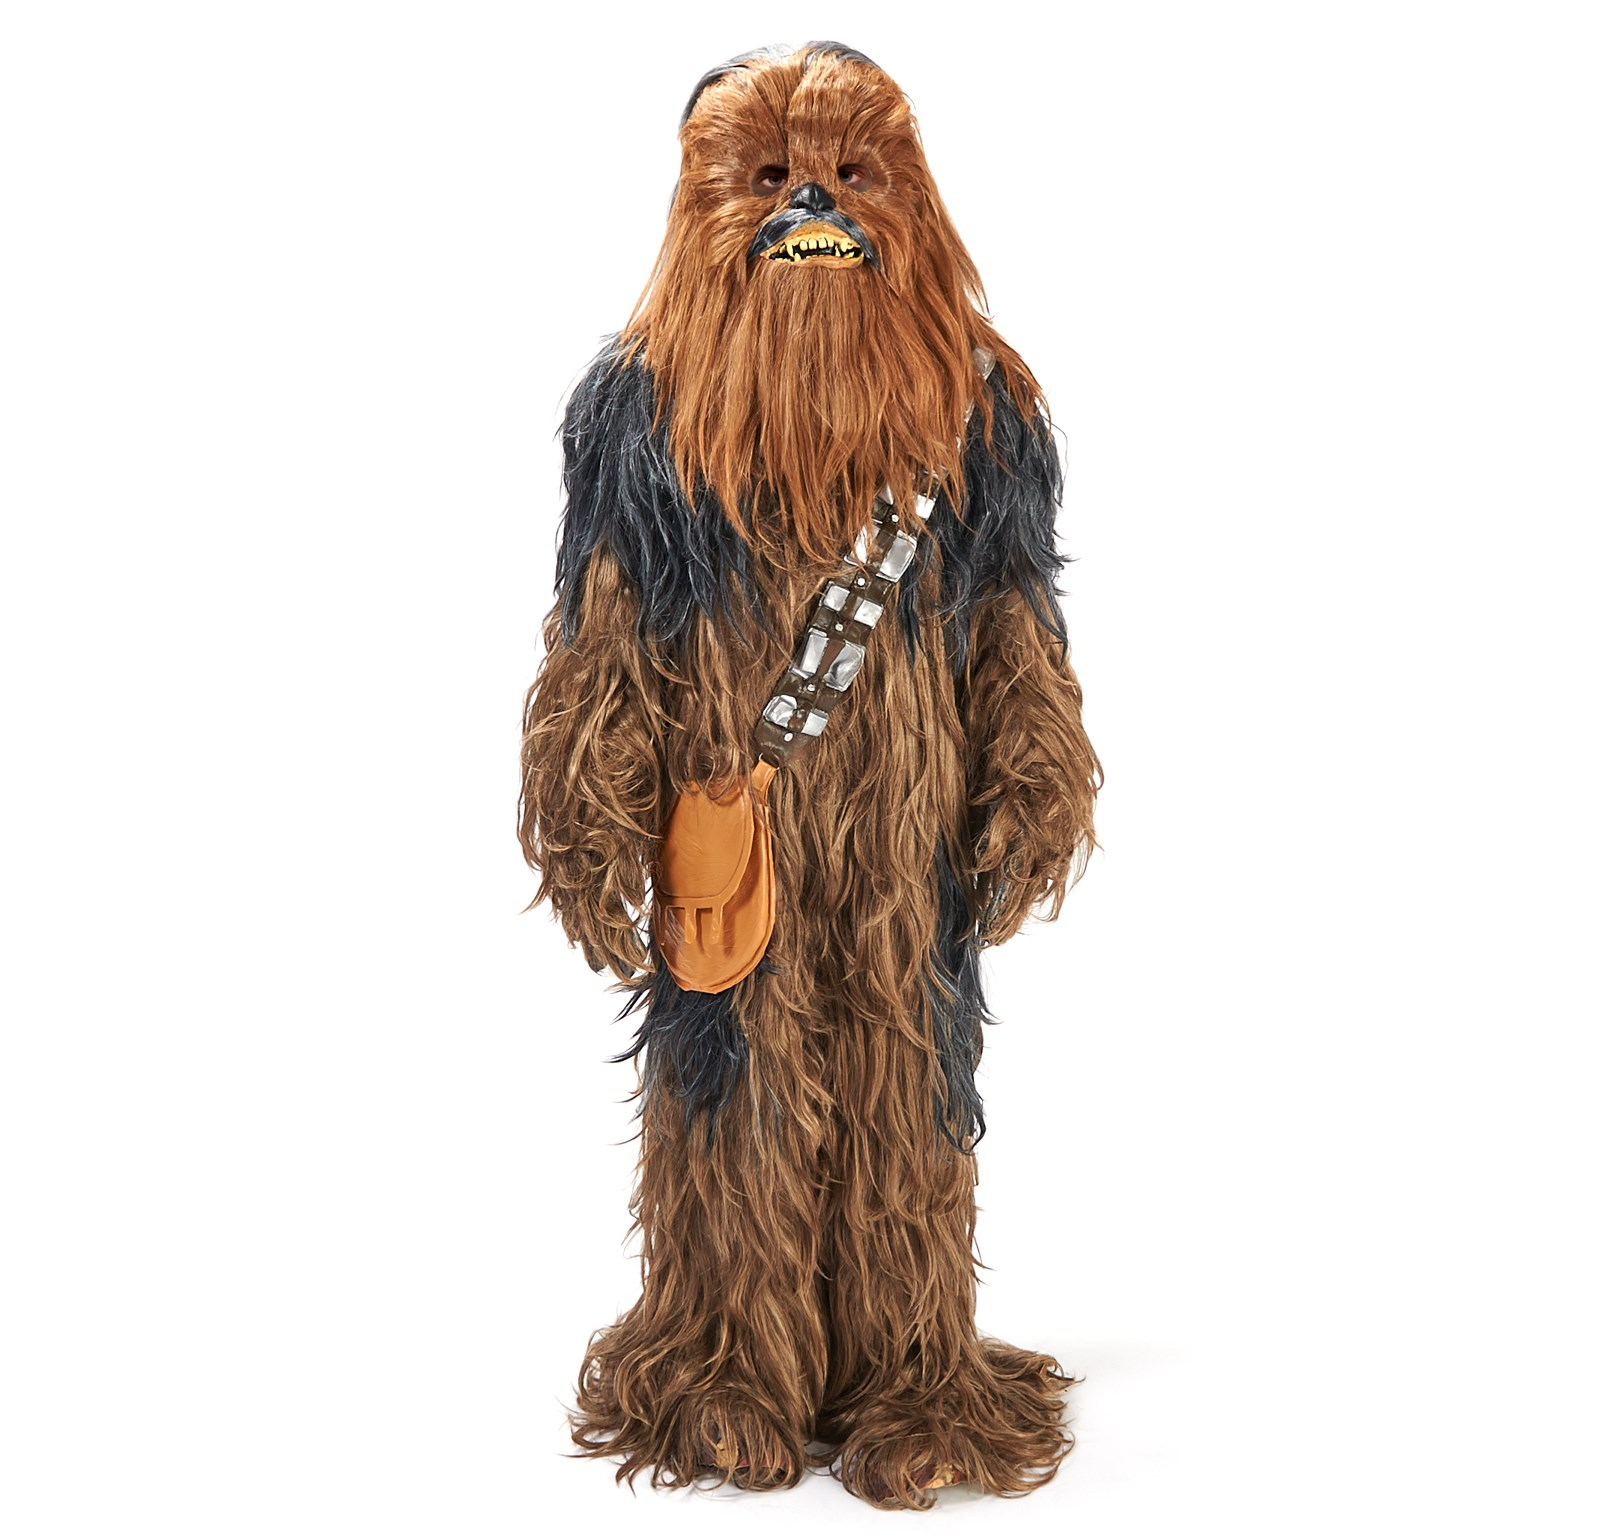 Star Wars - Chewbacca Collector's Edition Adult Costume | BuyCostumes.com